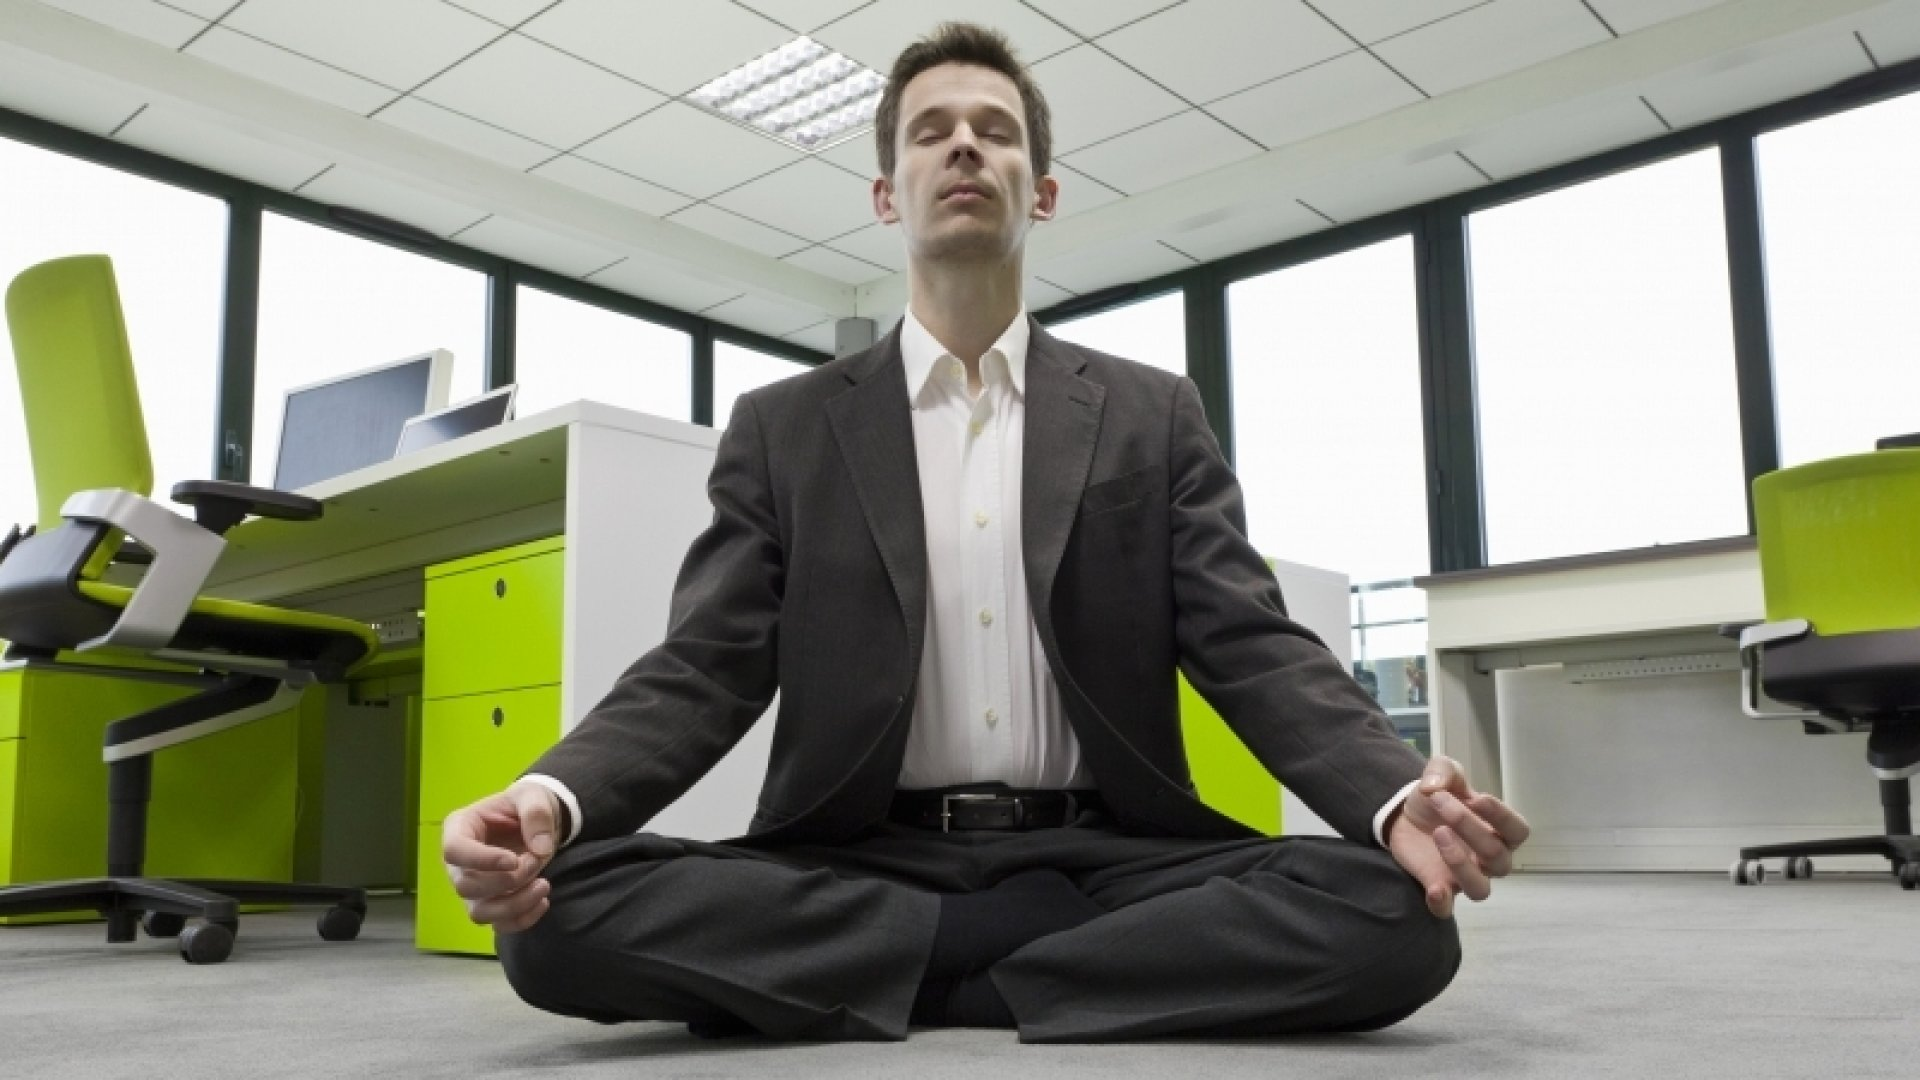 6 Great Online Tools to Help You Meditate